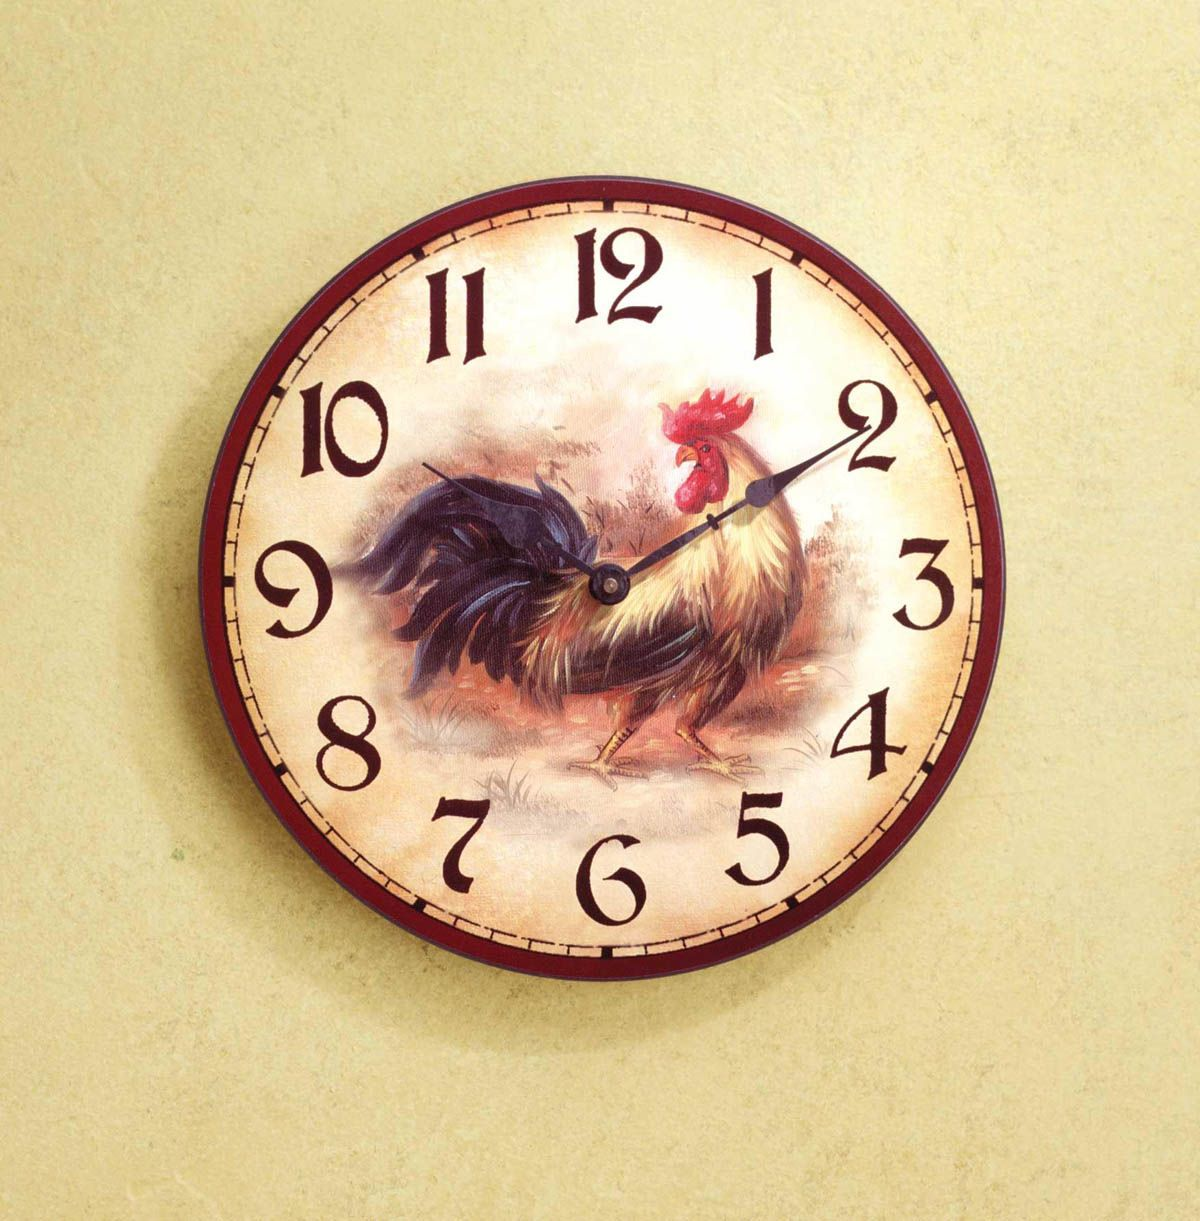 Rooster Wall Clock Description Muted Colors And An Antique Finish Combine  To Make This Wooden Wall Clock Glow With Down Home Country Charm.